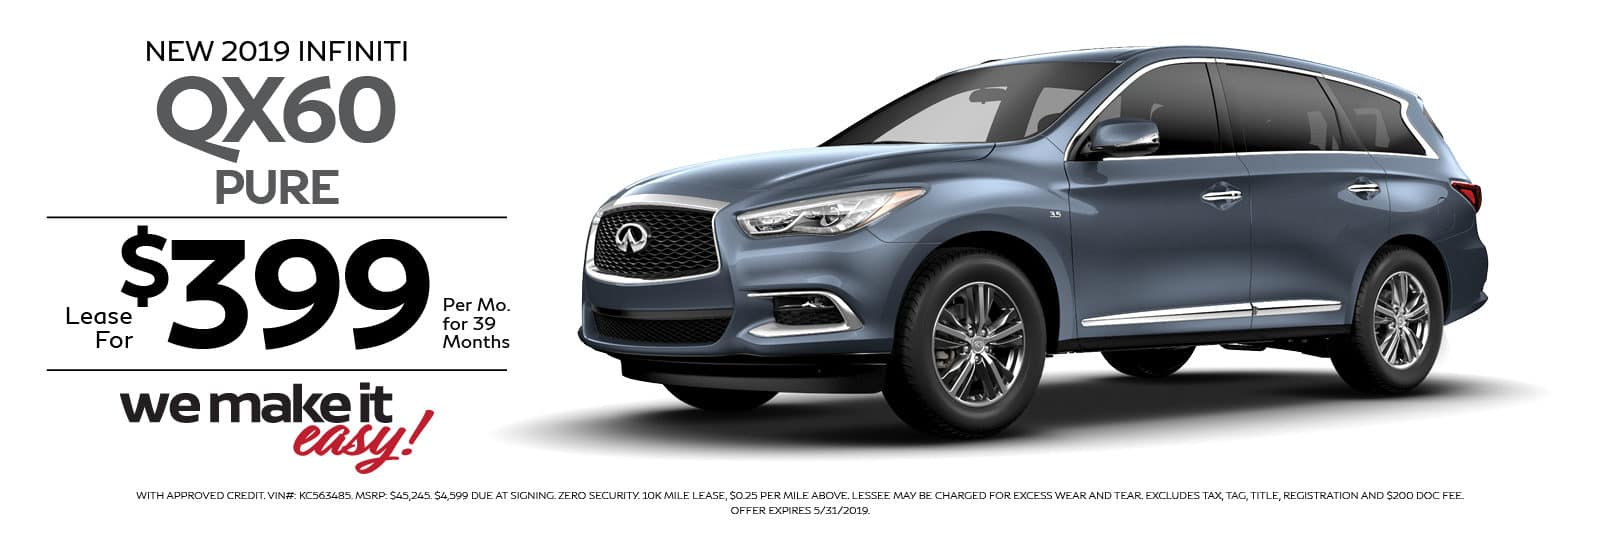 RAY BRANDT INFINITI QX60 SPECIAL